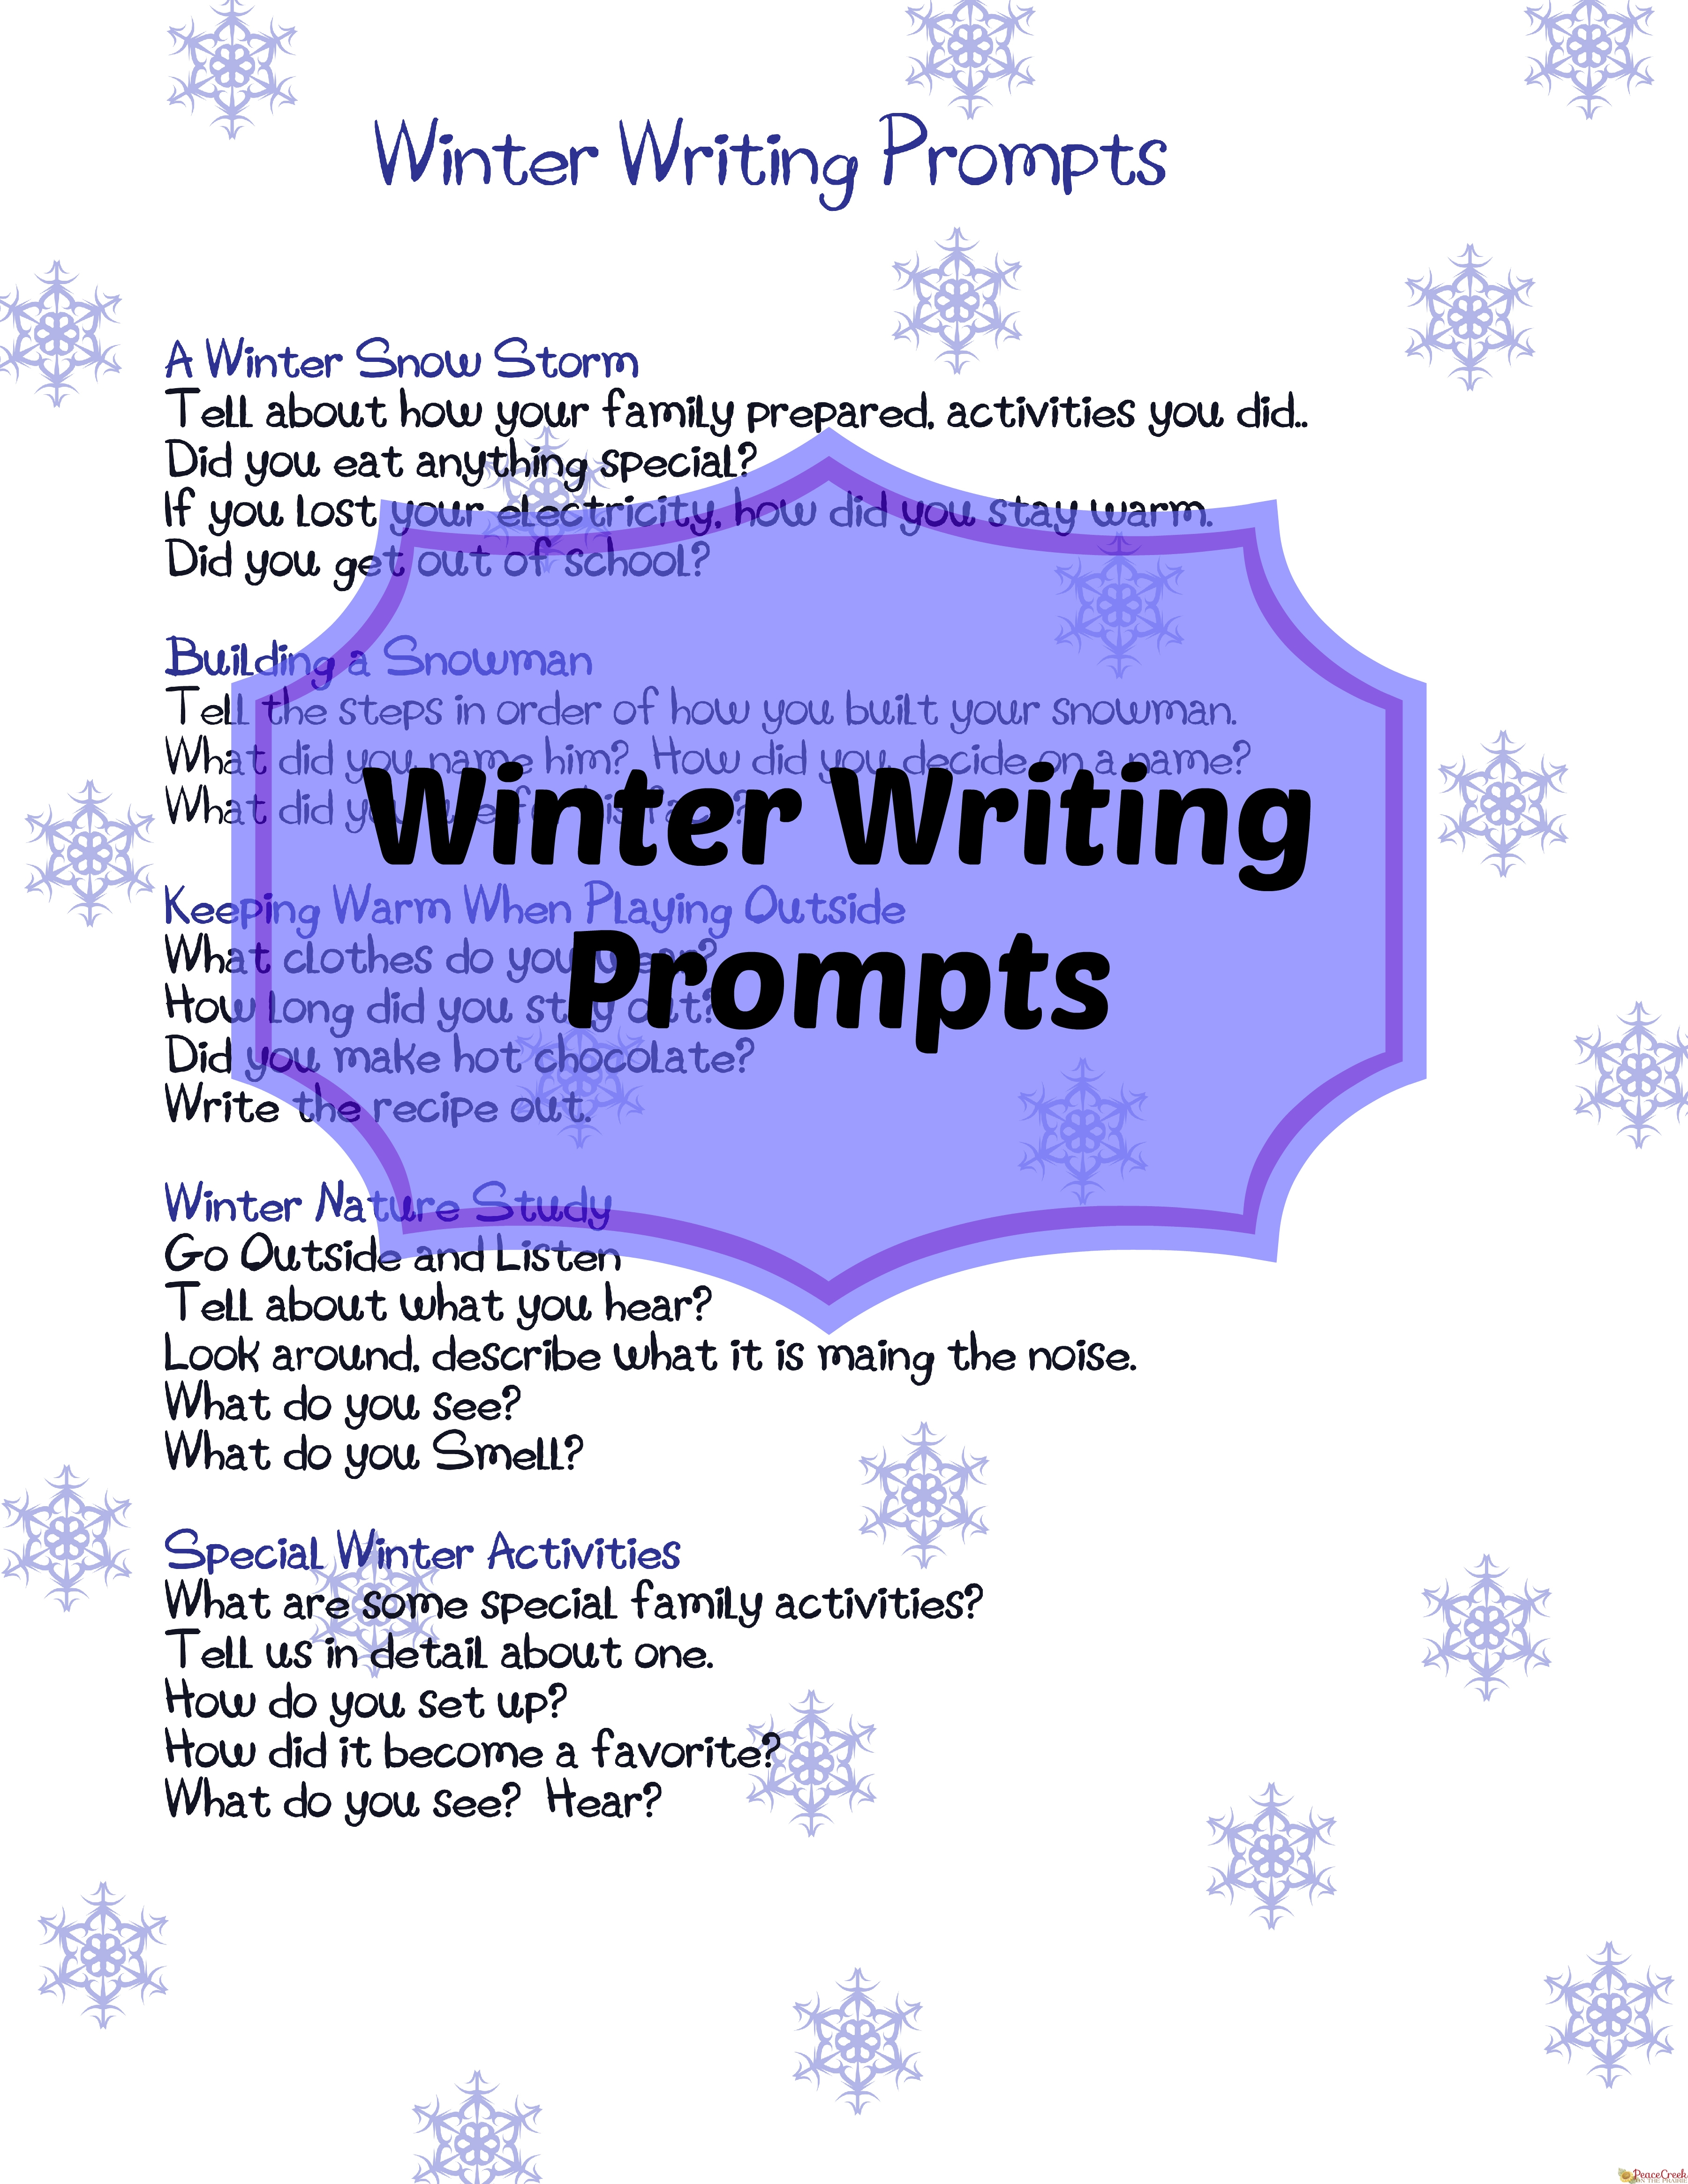 006 Essay Example Coalition Prompts Free Winter Writing Printable Peacecreekontheprairie Com College Sta Stanford Uc Harvard Examples List For Csu Texas Stunning Prompt 1 2018-19 Full